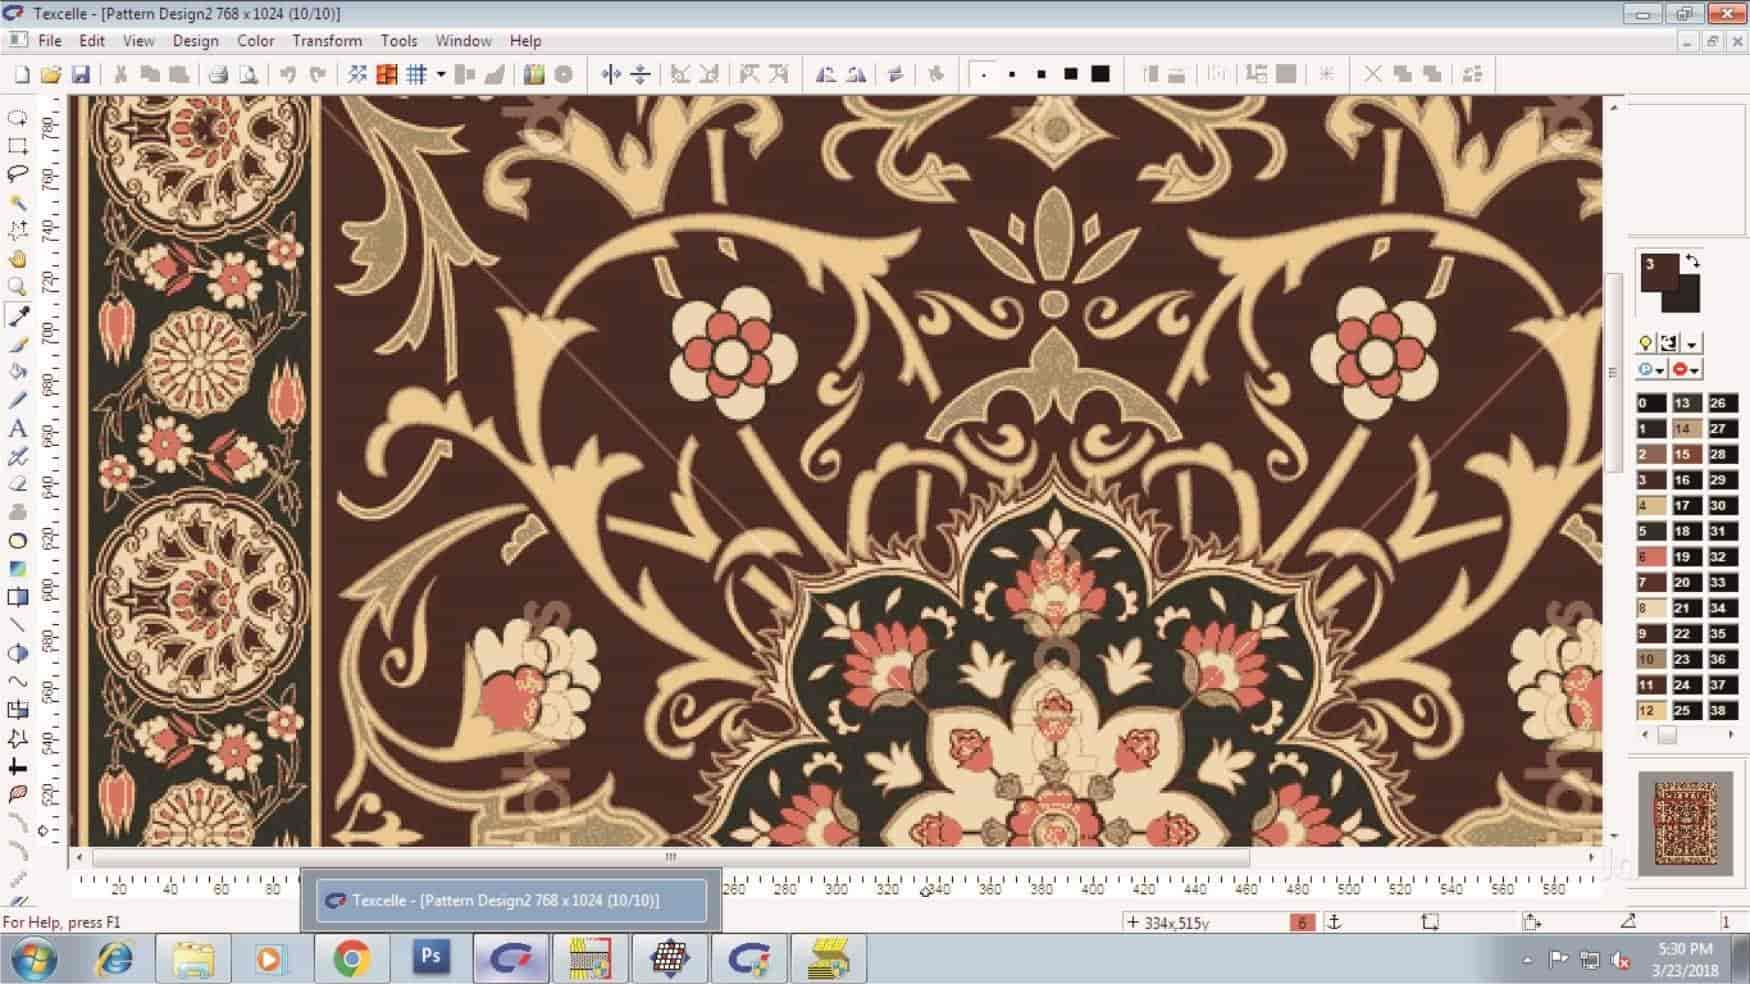 Textile Designing Software Course Panipat Tehsil Road Institutes For Textile Designing In Panipat Justdial